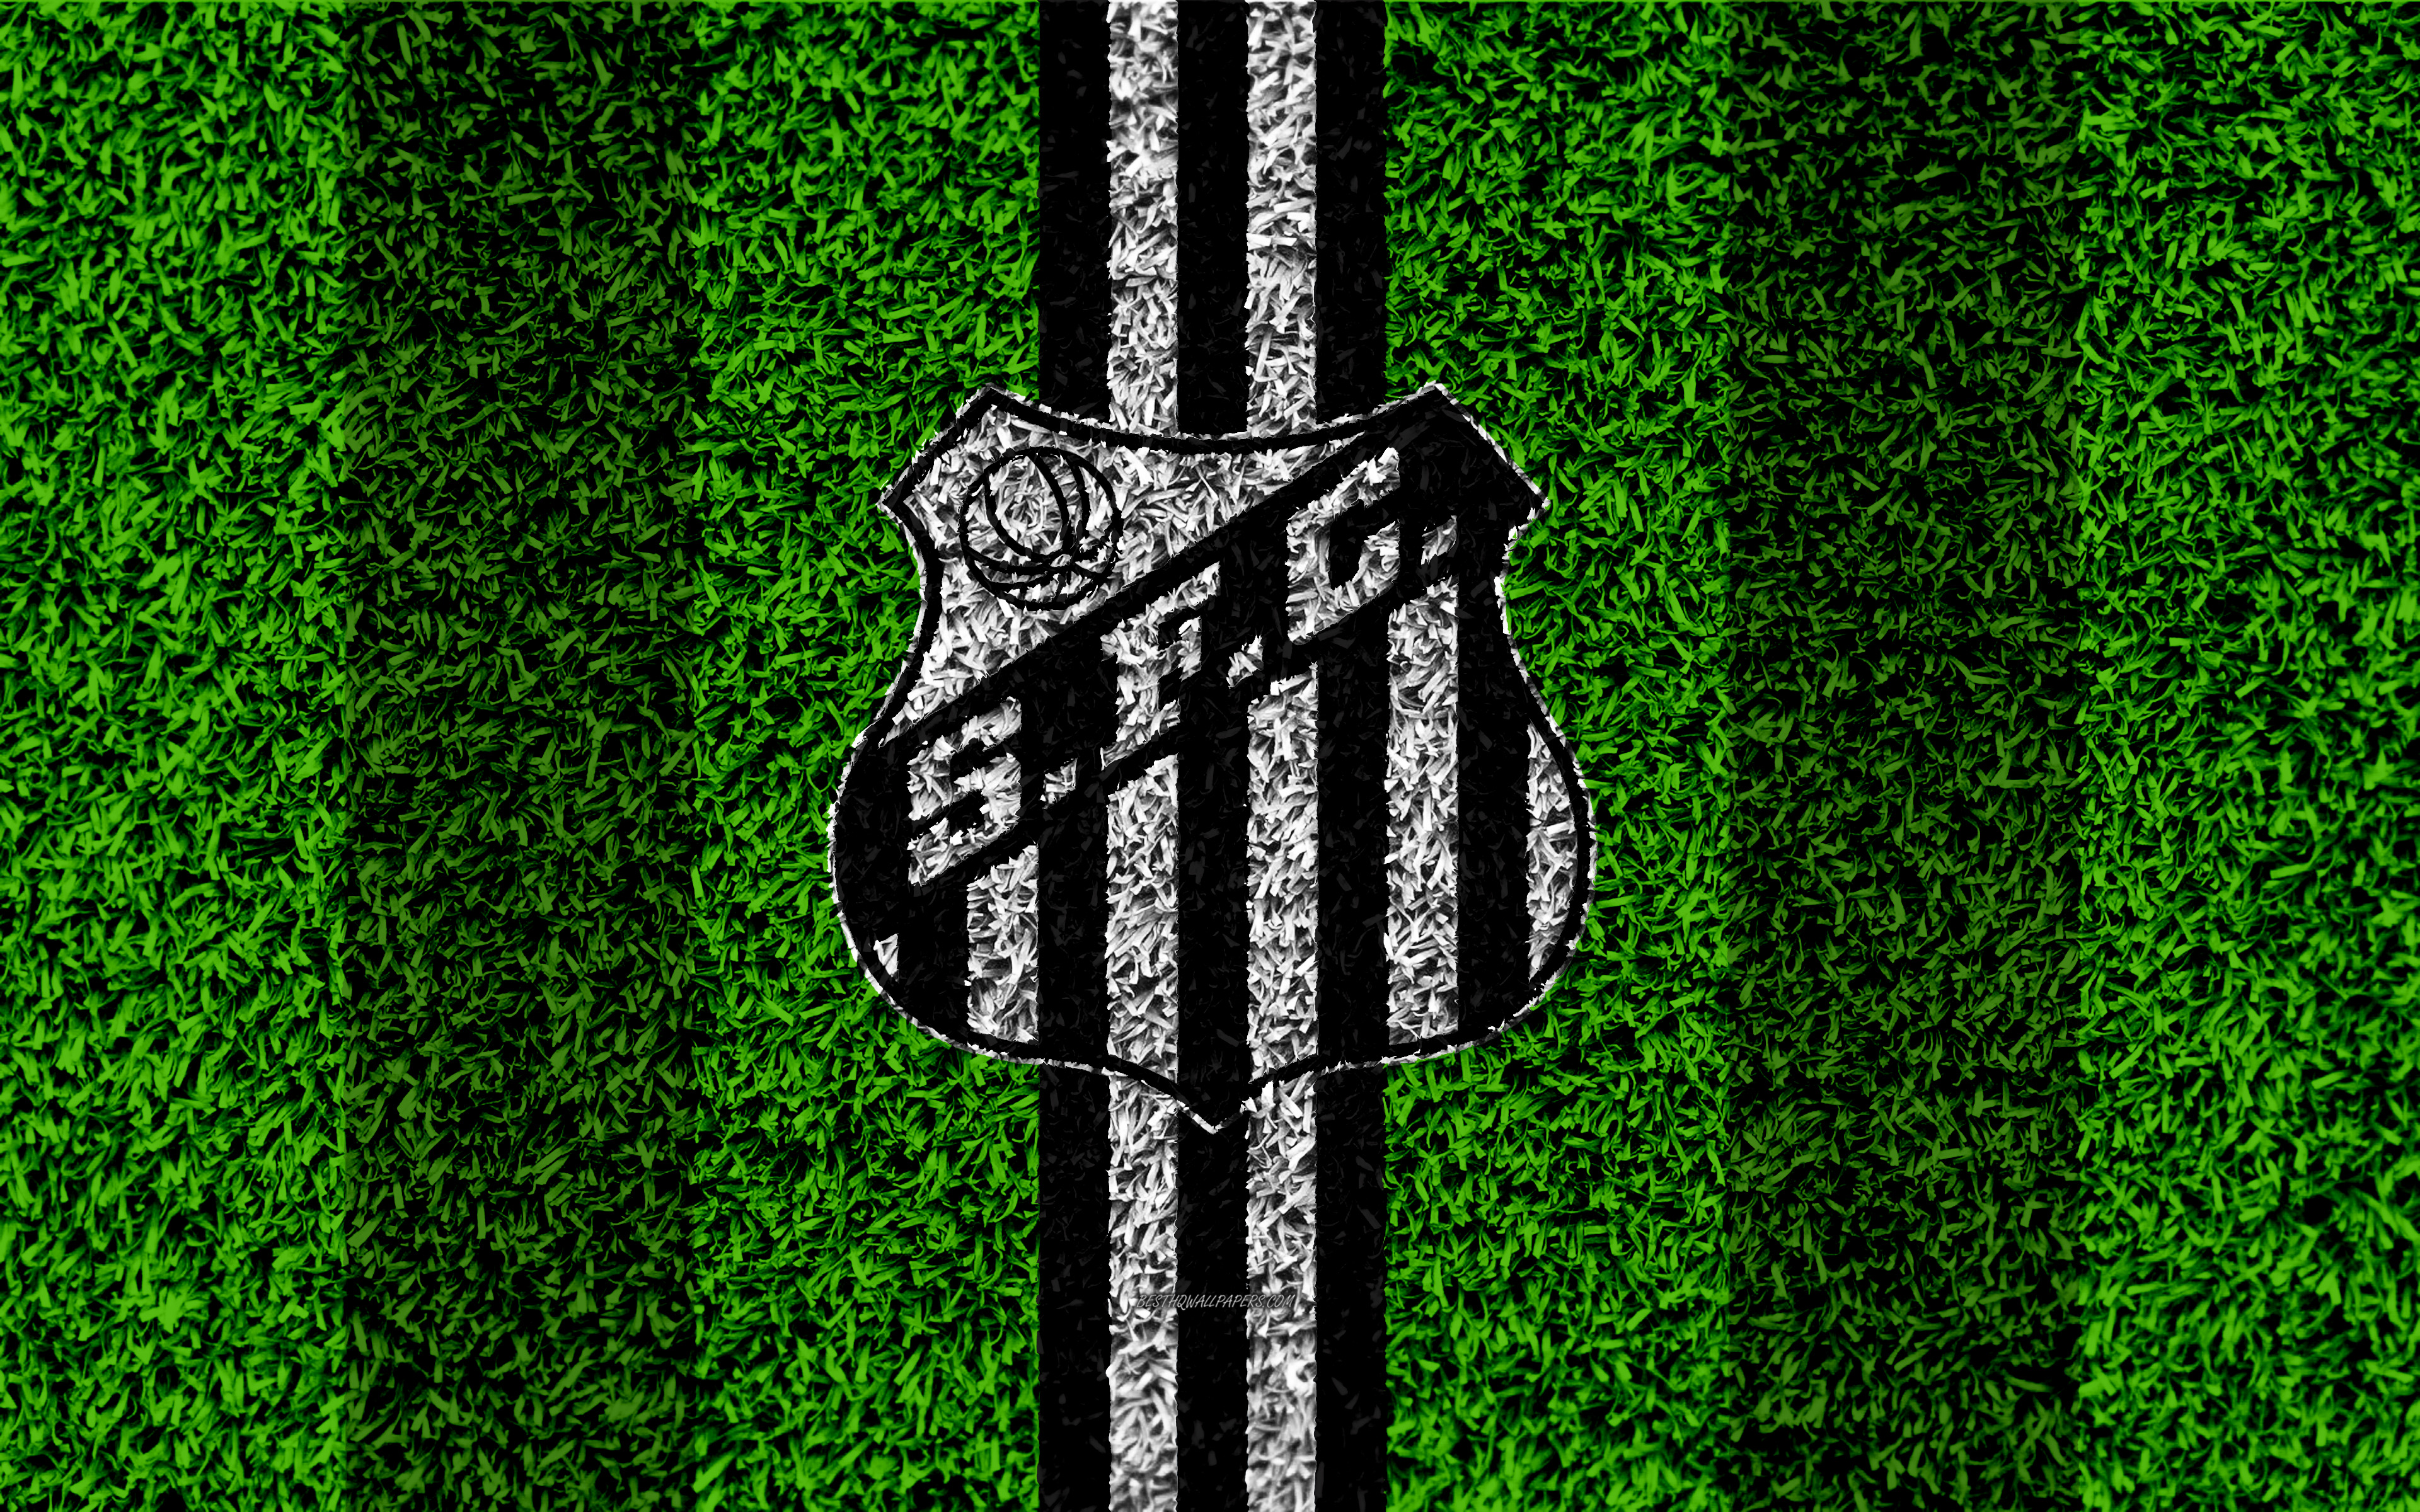 Download wallpapers Santos FC 4k football lawn logo Brazilian 3840x2400